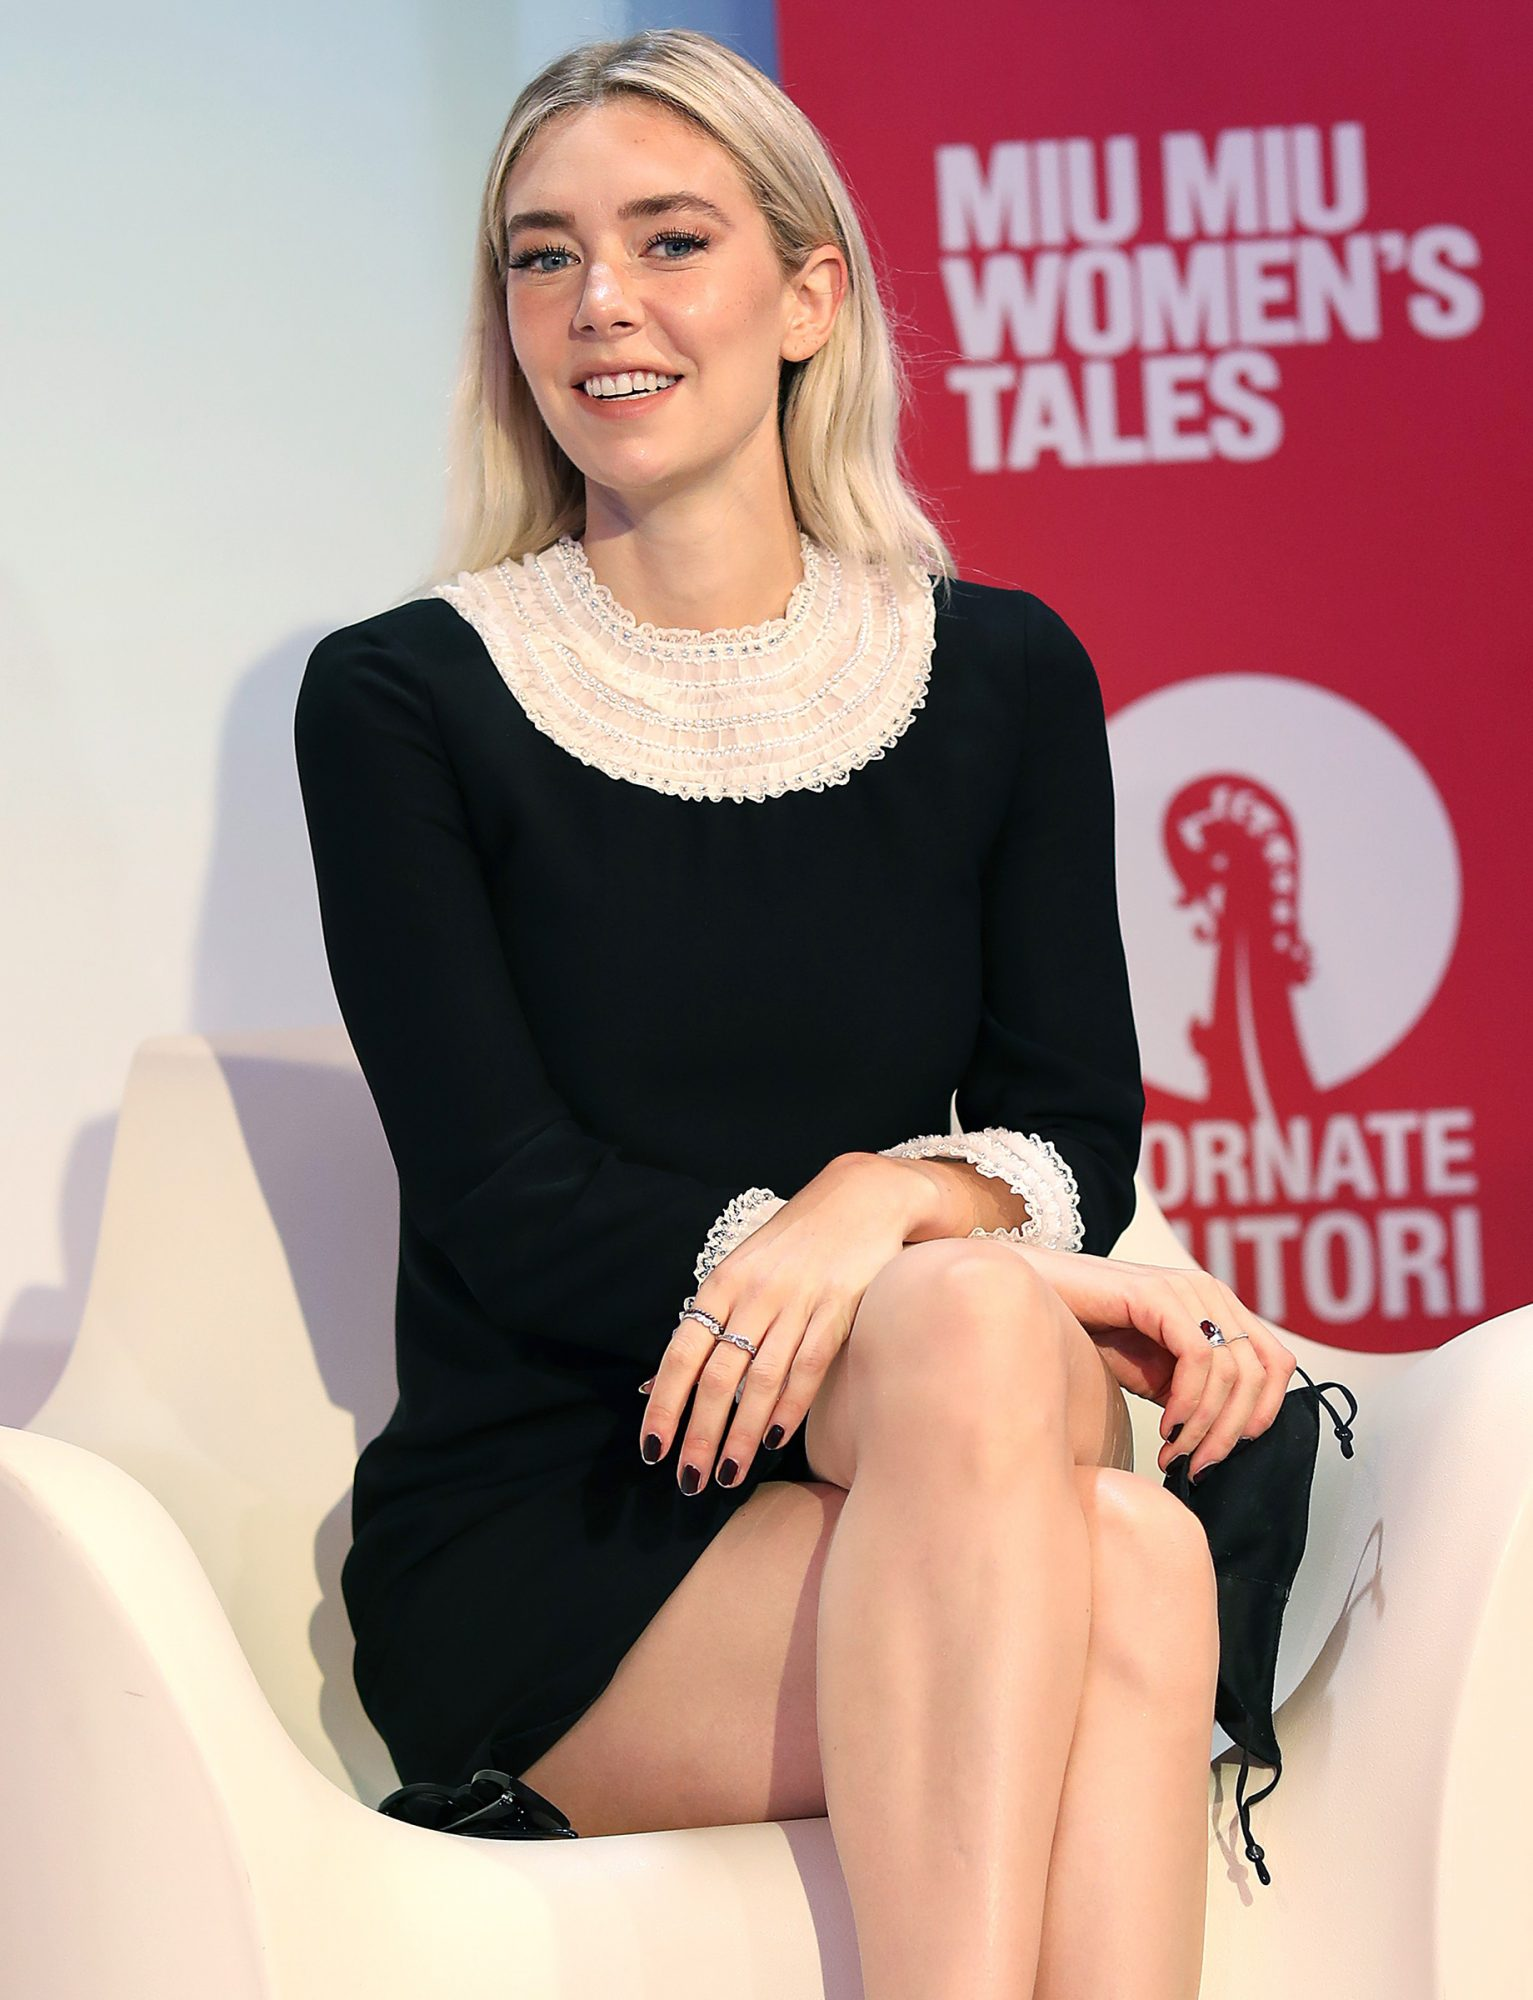 Vanessa Kirby attends the Miu Miu Women's Tales meeting during the 77th Venice Film Festival on September 08, 2020 in Venice